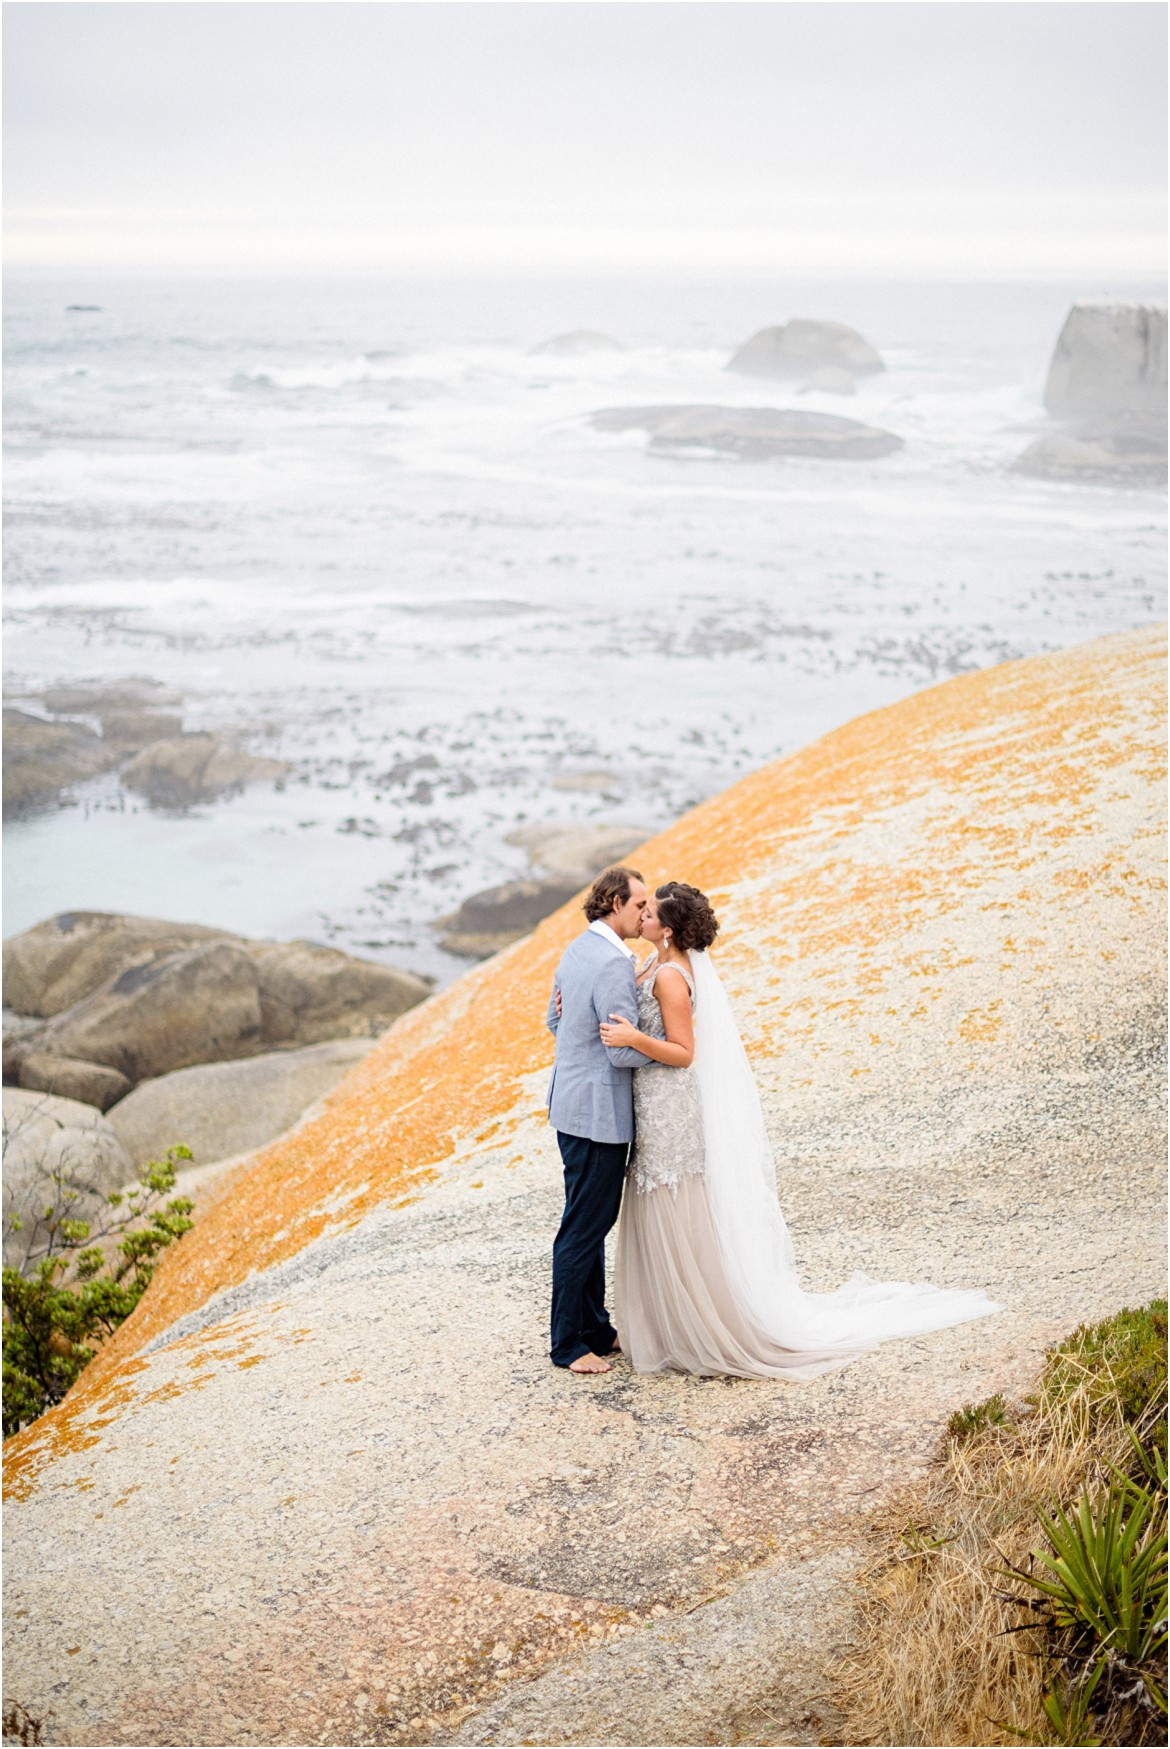 LoveCapeTown-RealWedding-L&T-CapeTown-017